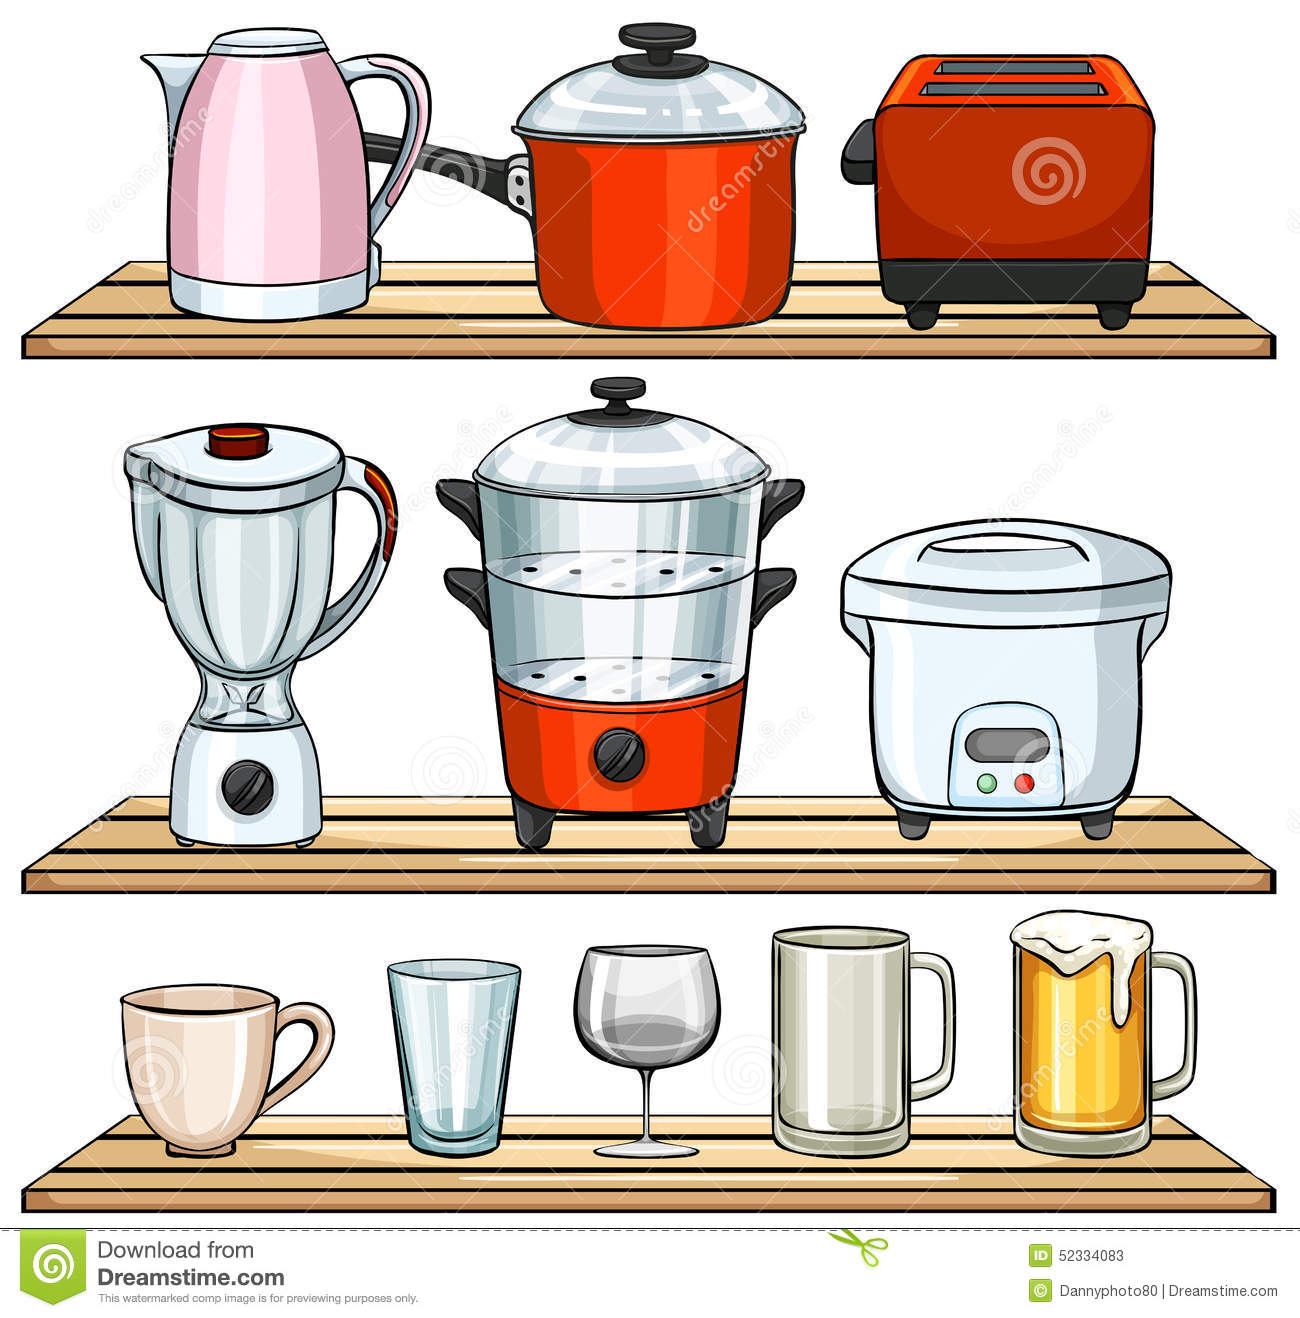 Free Clipart Kitchen Appliances